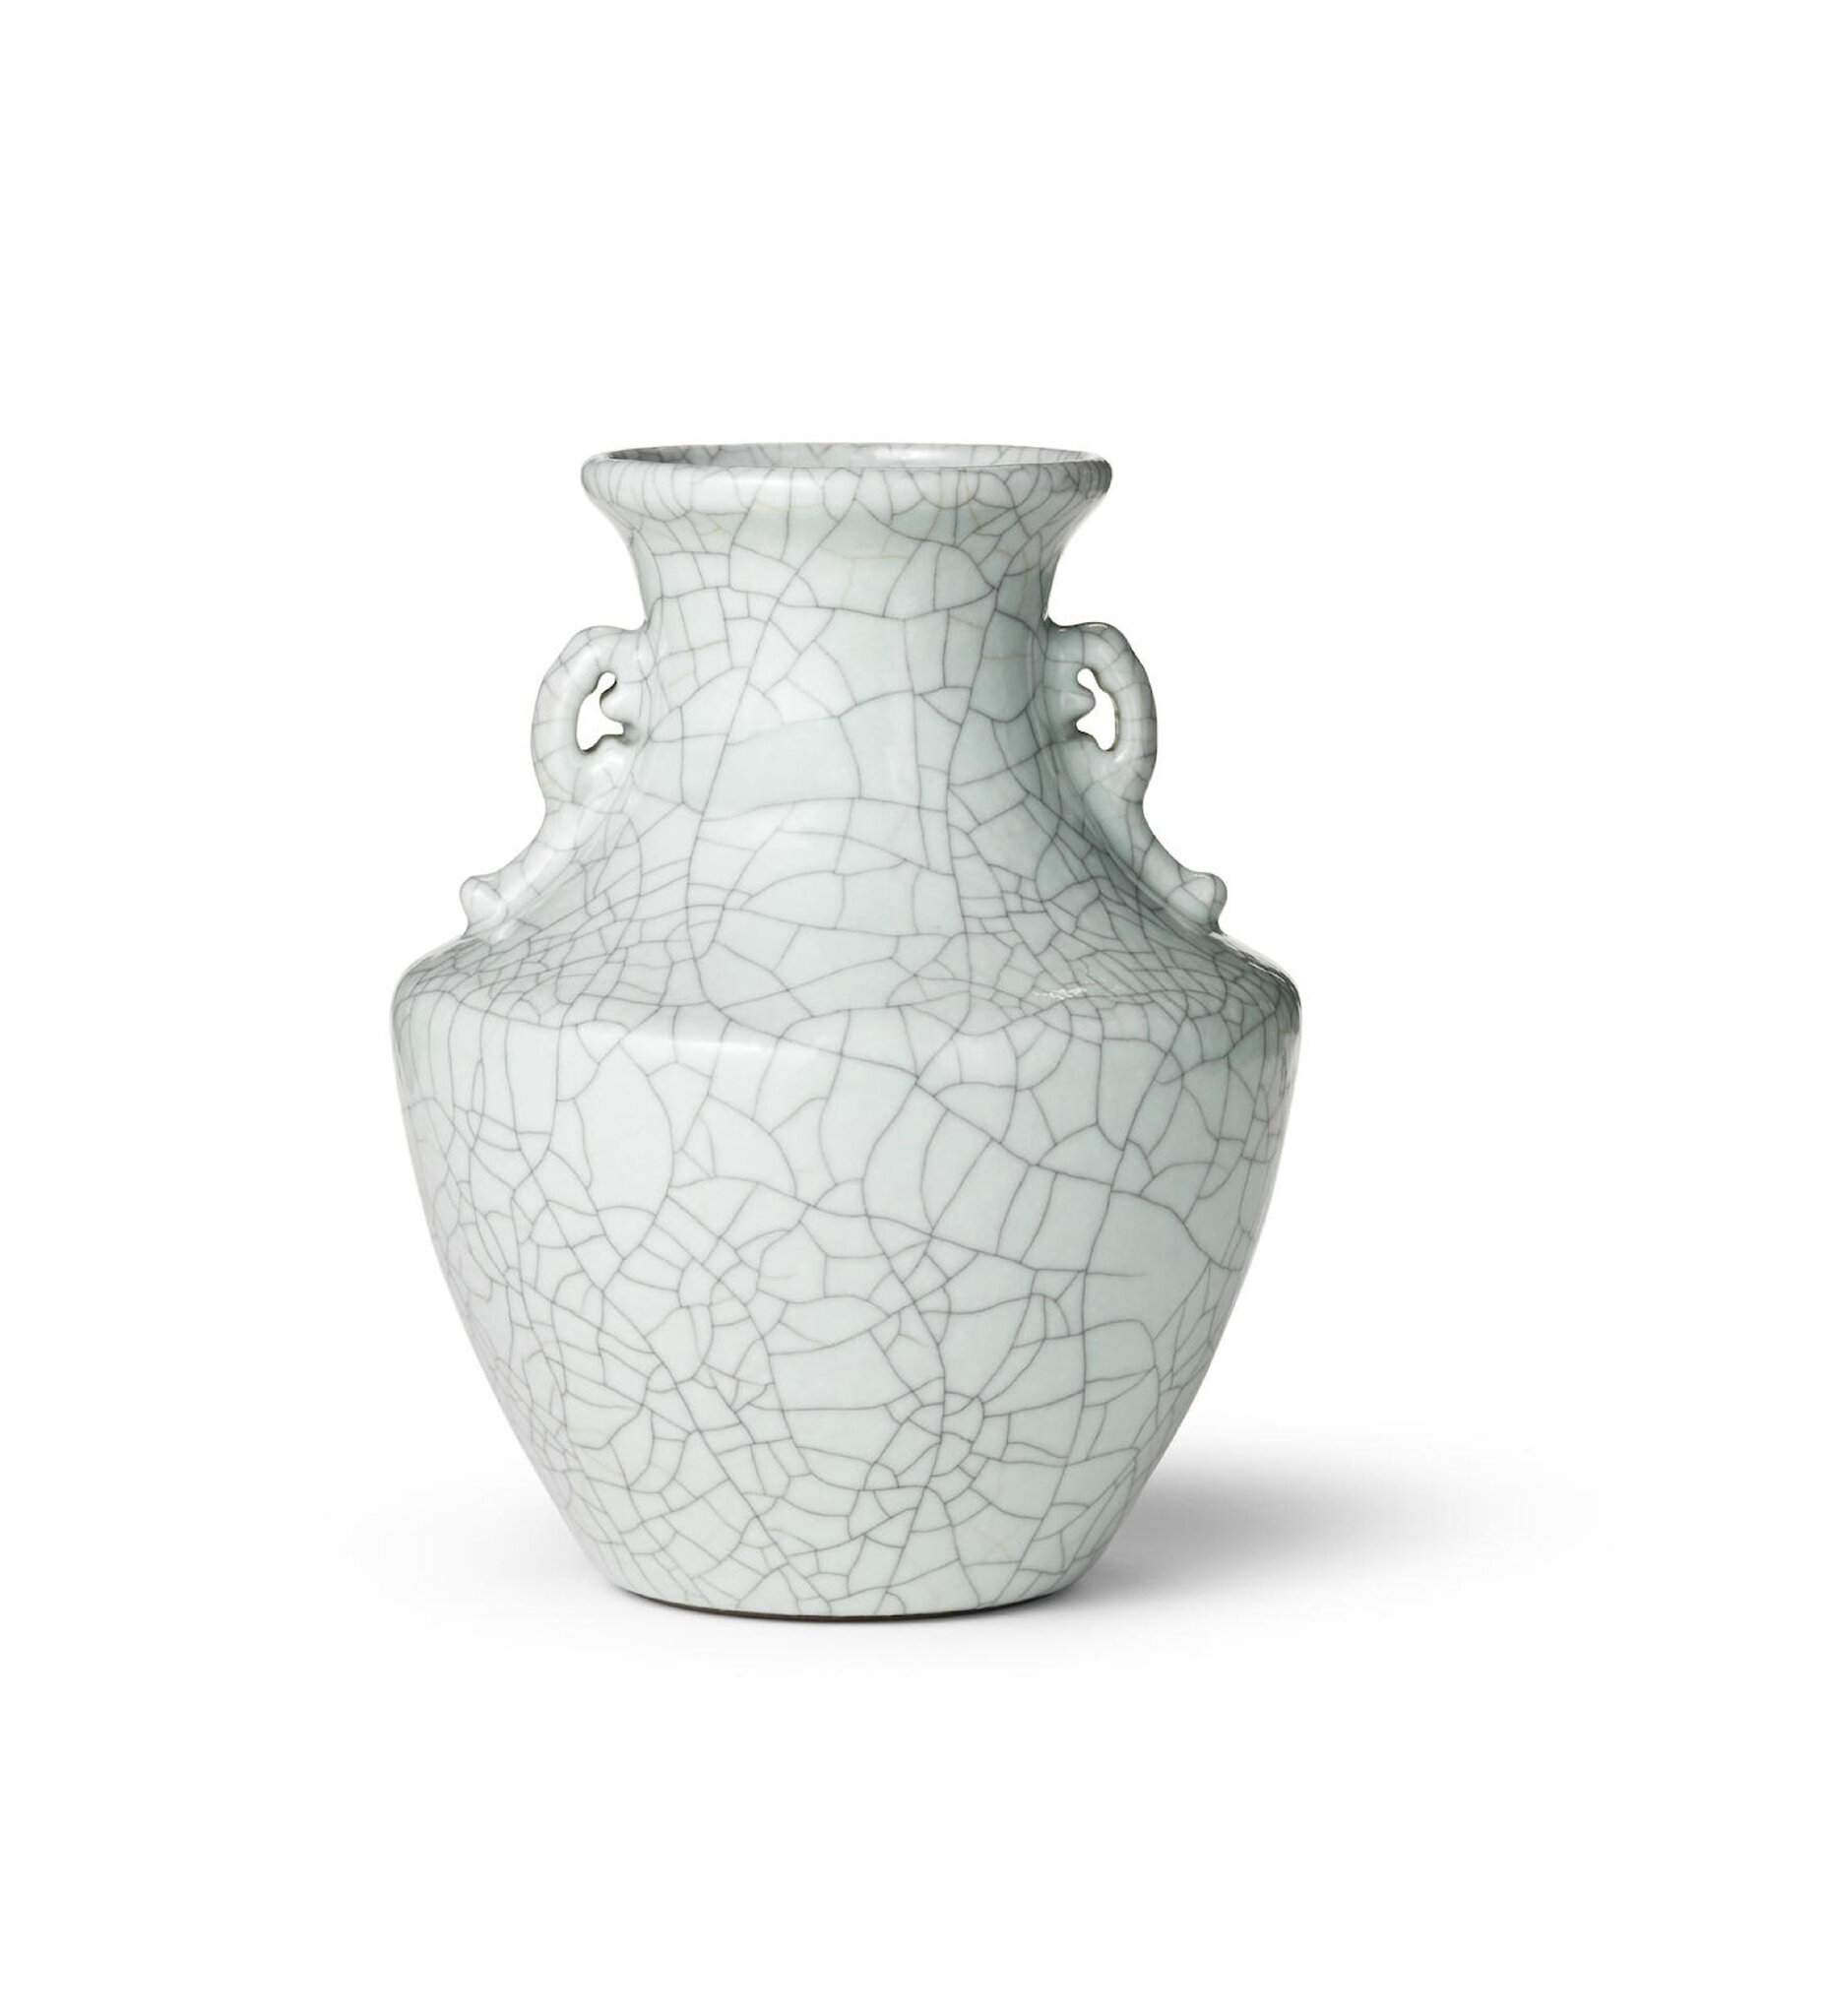 Bonhams to offer imperial chinese porcelain works of art alainr a rare imperial ge type vase zun qianlong seal mark and of the period 1736 1795 estimate hk 35 million 5 million 400000 570000 reviewsmspy